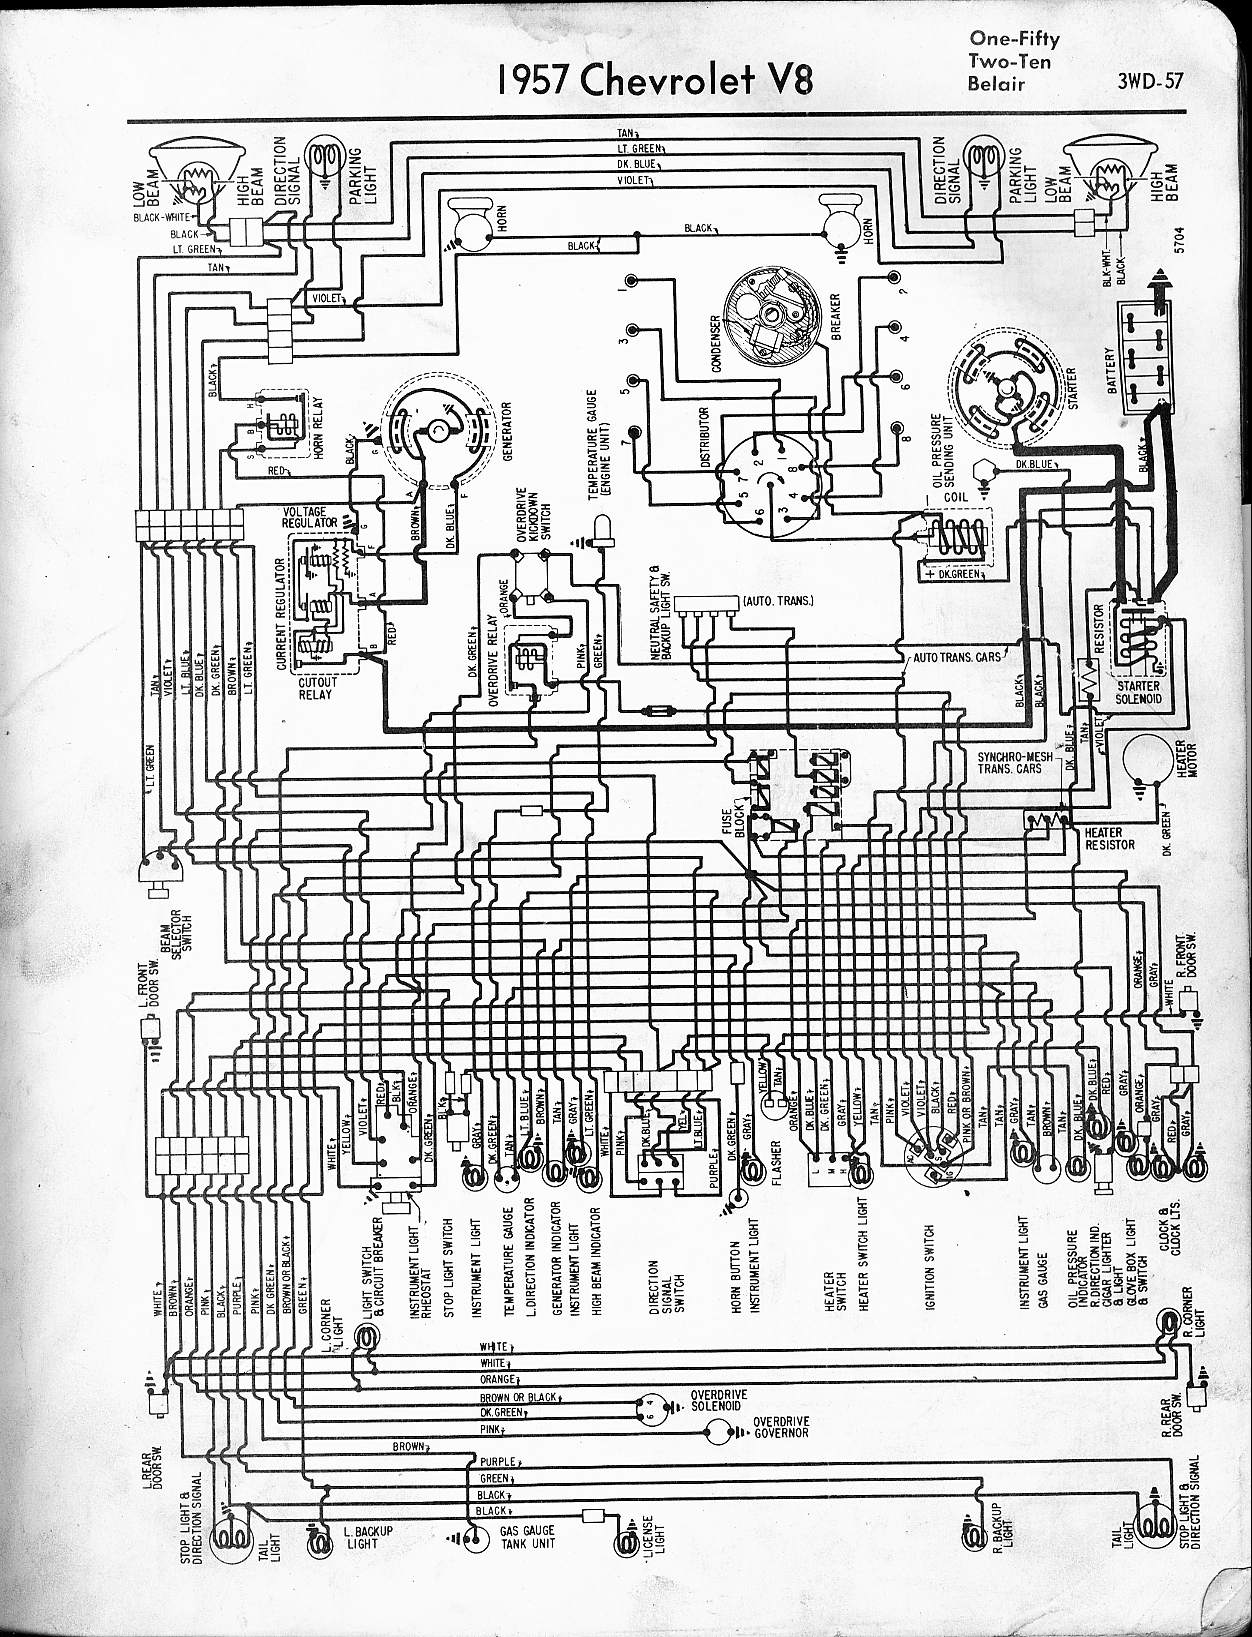 MWireChev57_3WD 057 1955 chevy wiring diagram 1955 pontiac wiring diagram \u2022 free 57 Chevy Wiring Diagram at nearapp.co